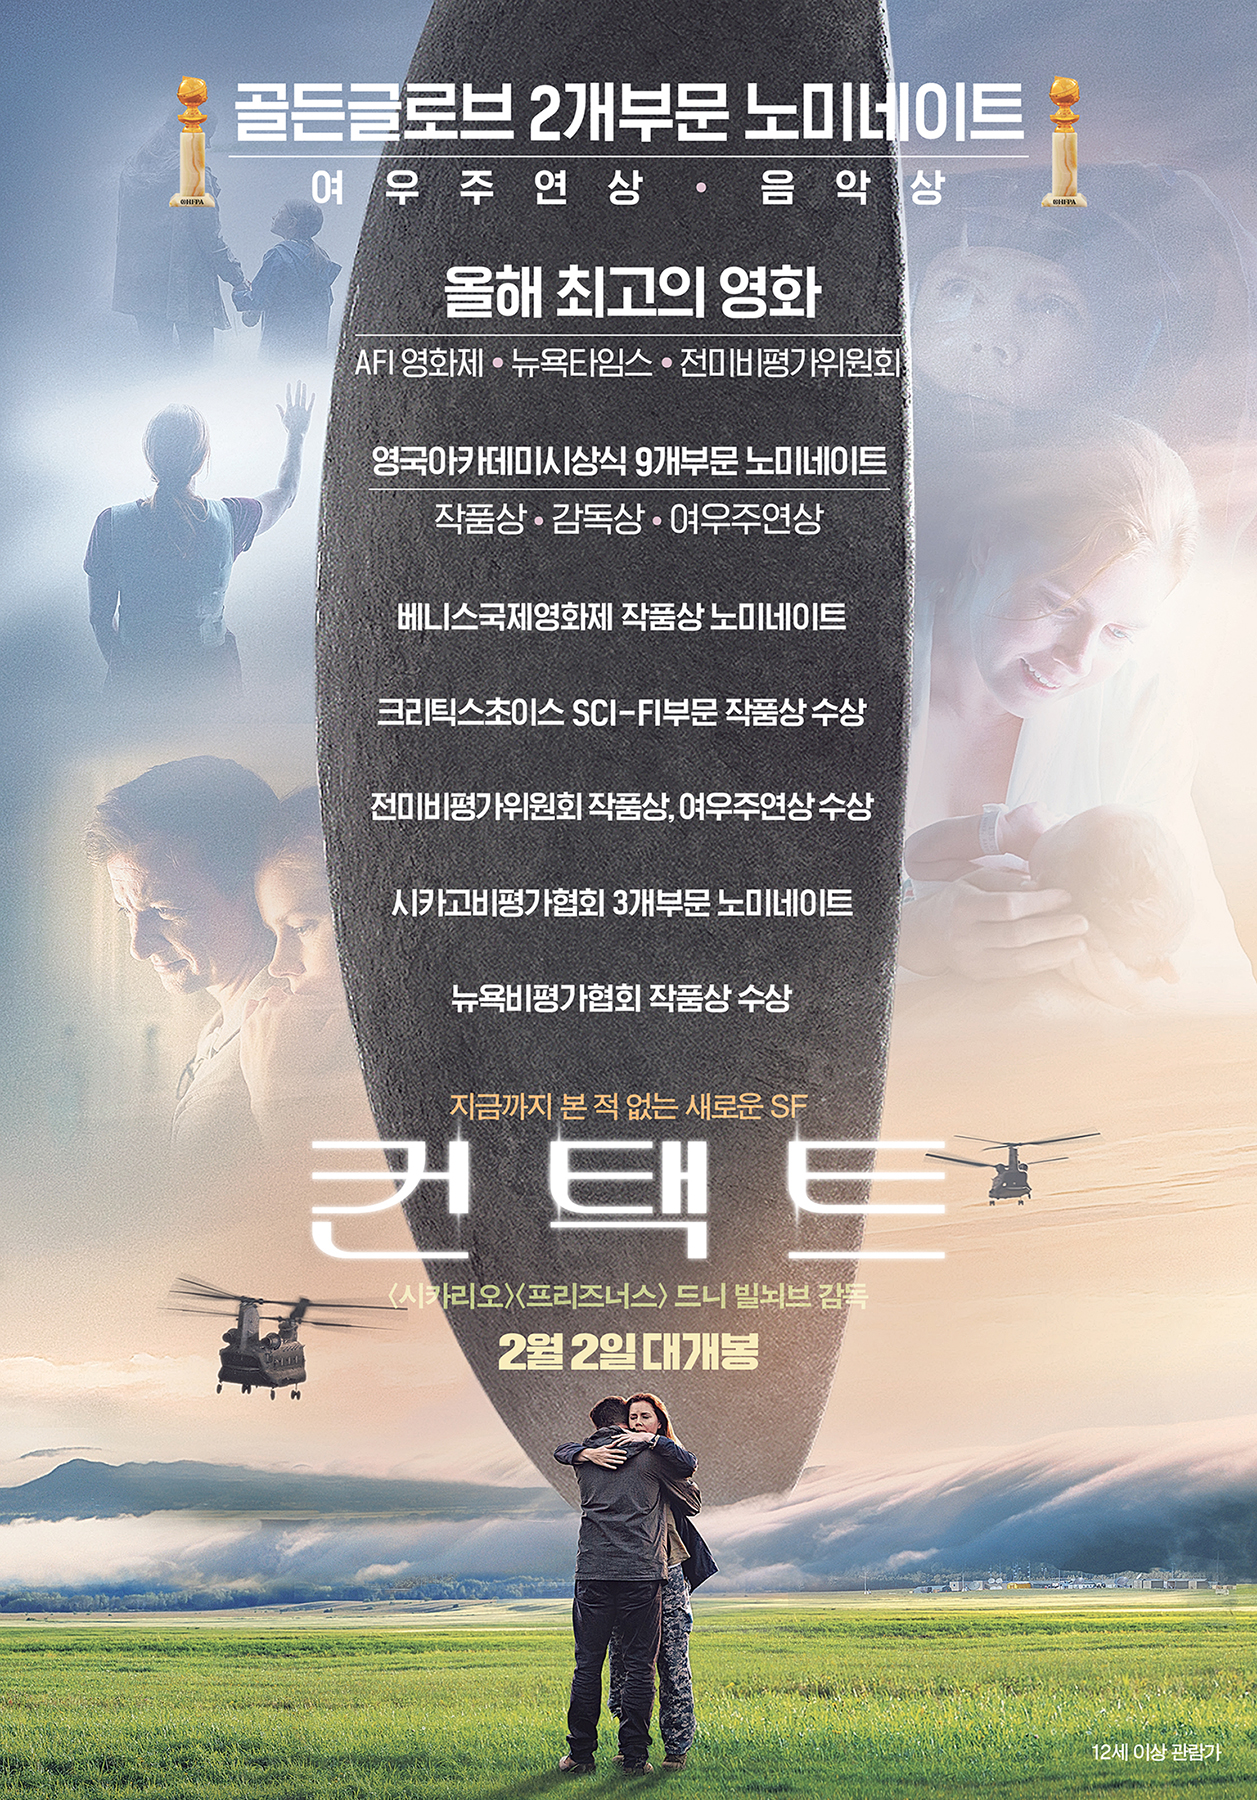 http---movie.phinf.naver.net-20170123_196-1485136184749Qy5Y1_JPEG-movie_image.jpg